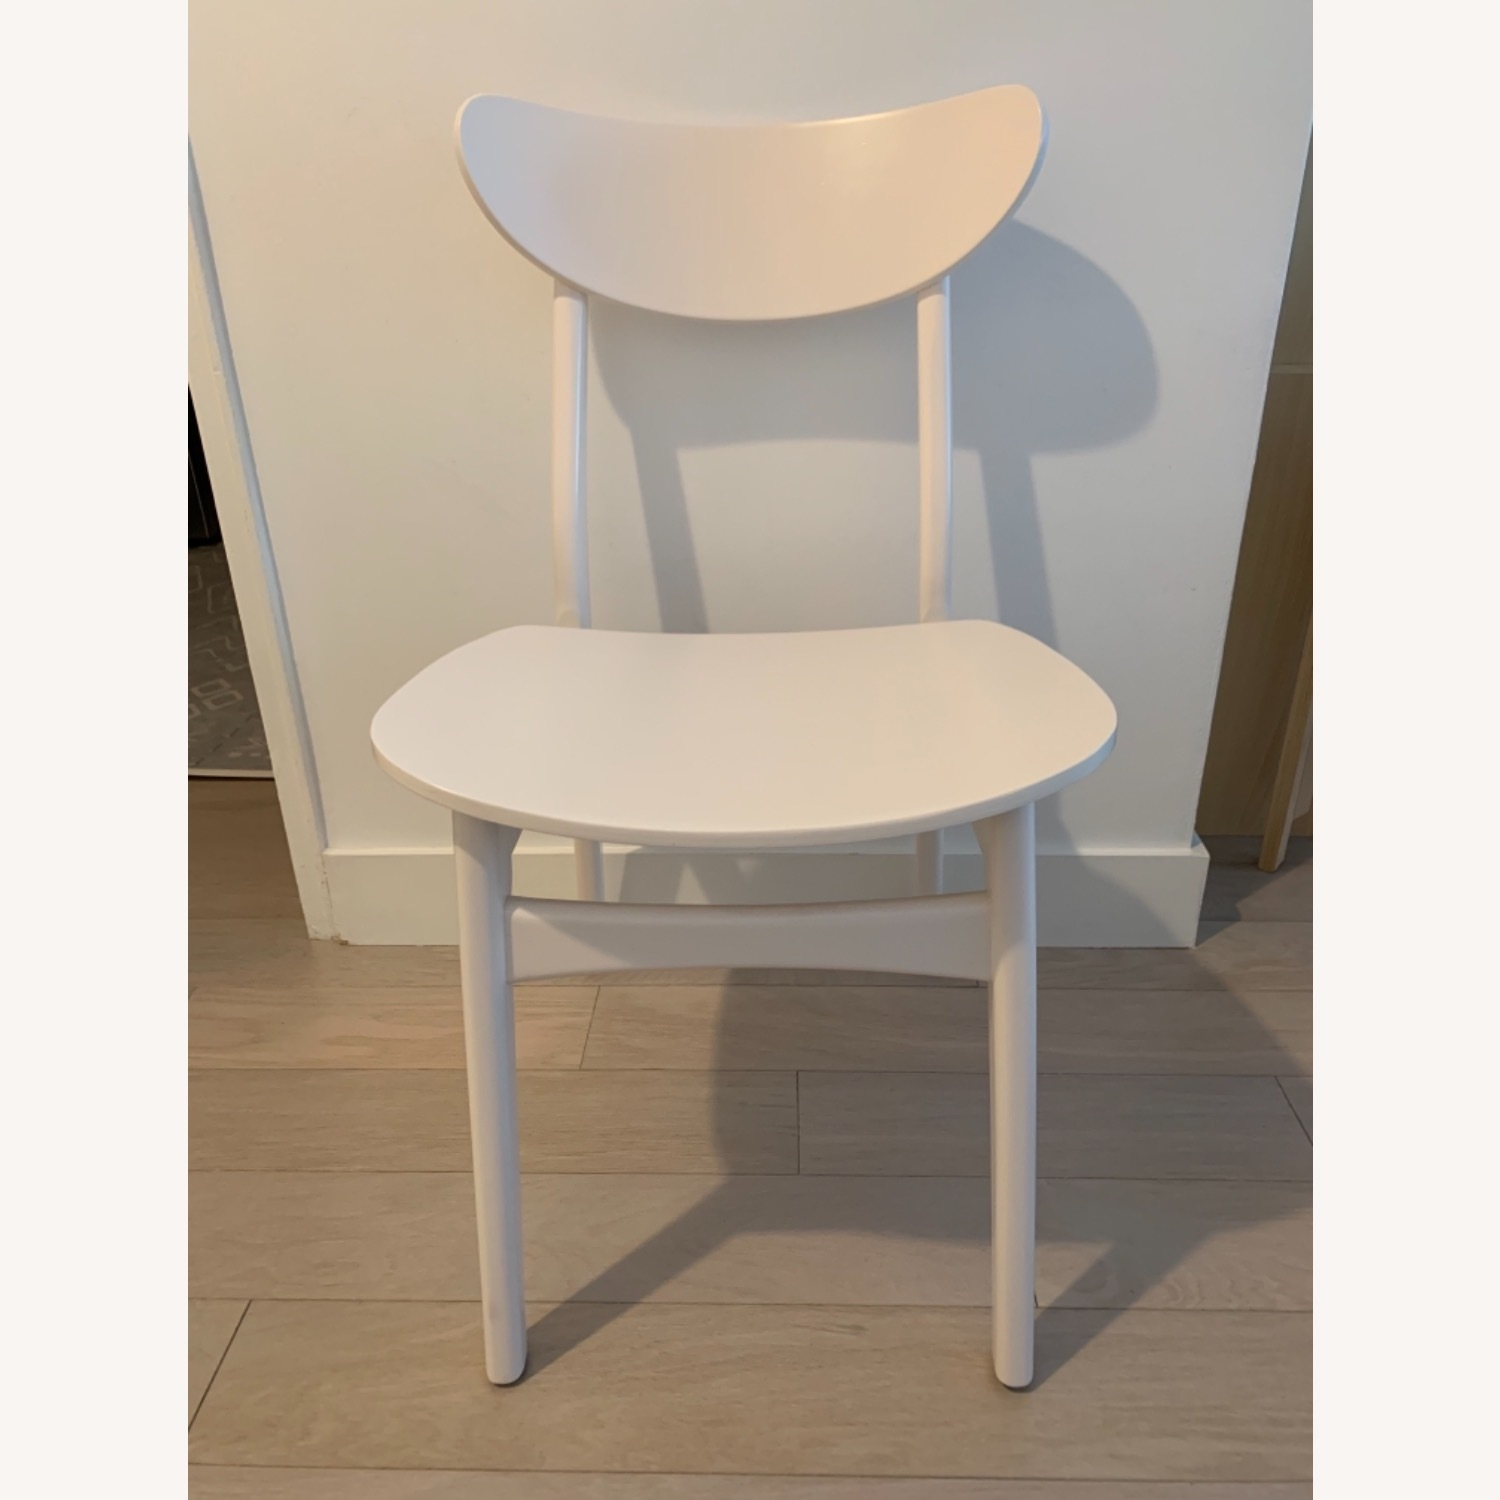 West Elm Cafe Dining Chair - image-1